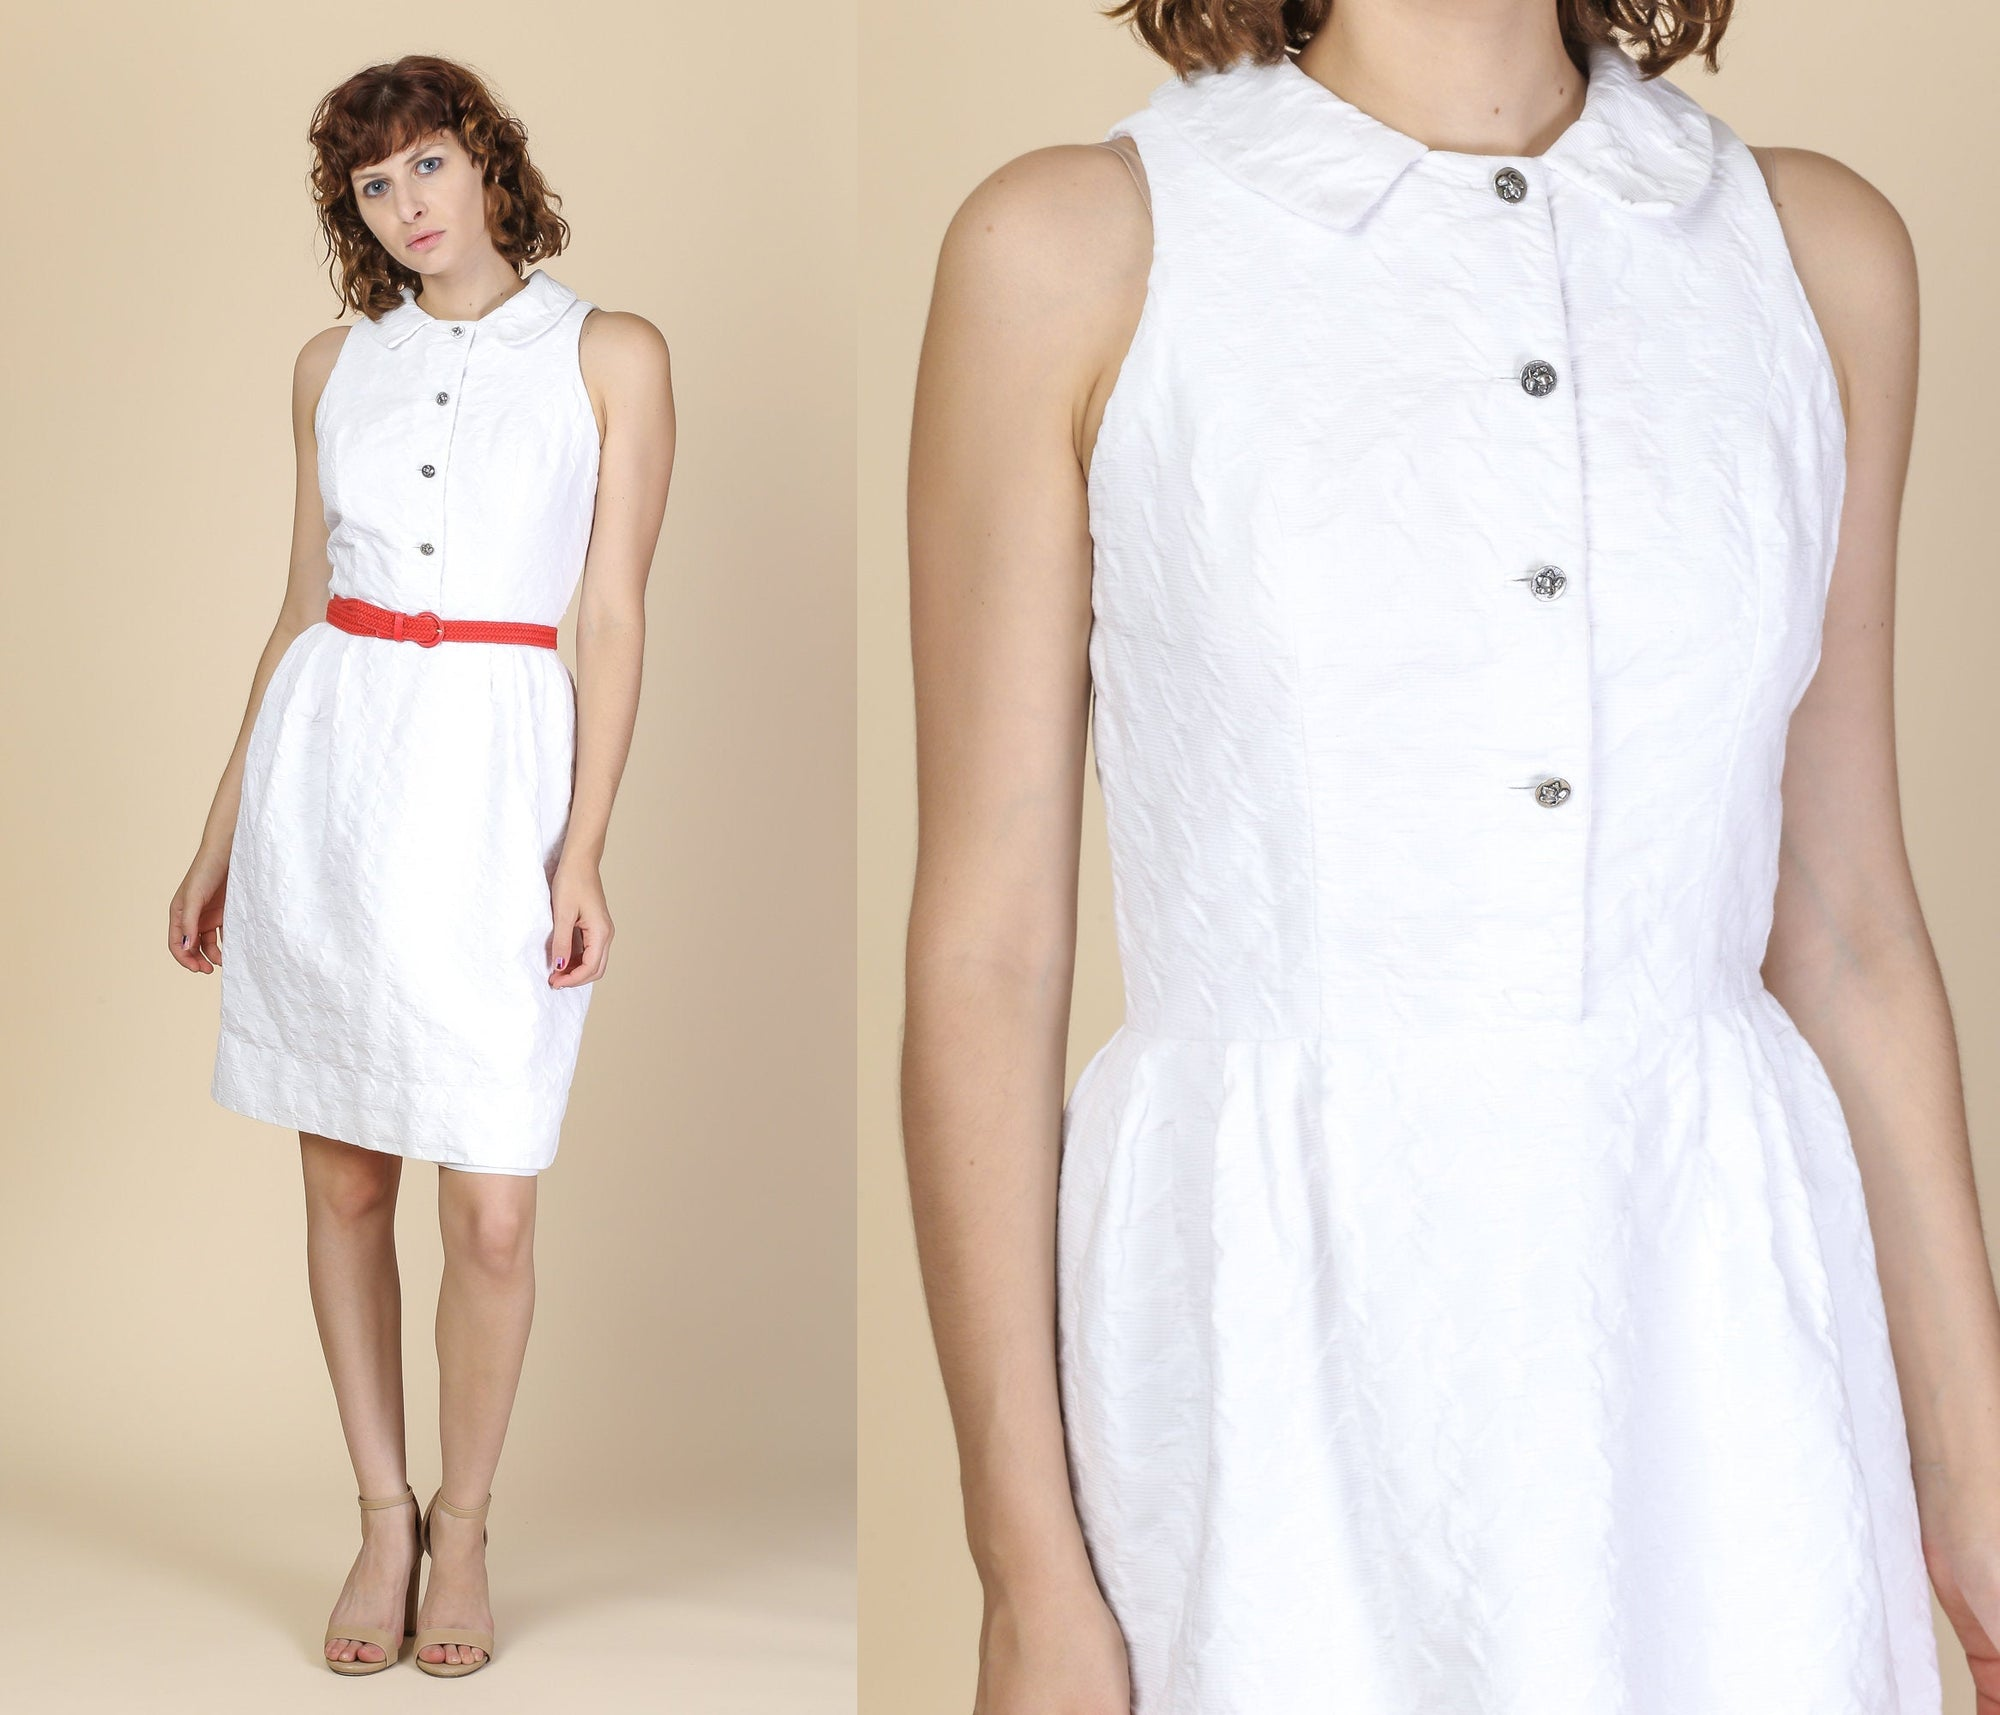 60s White Cotton Day Dress - Medium